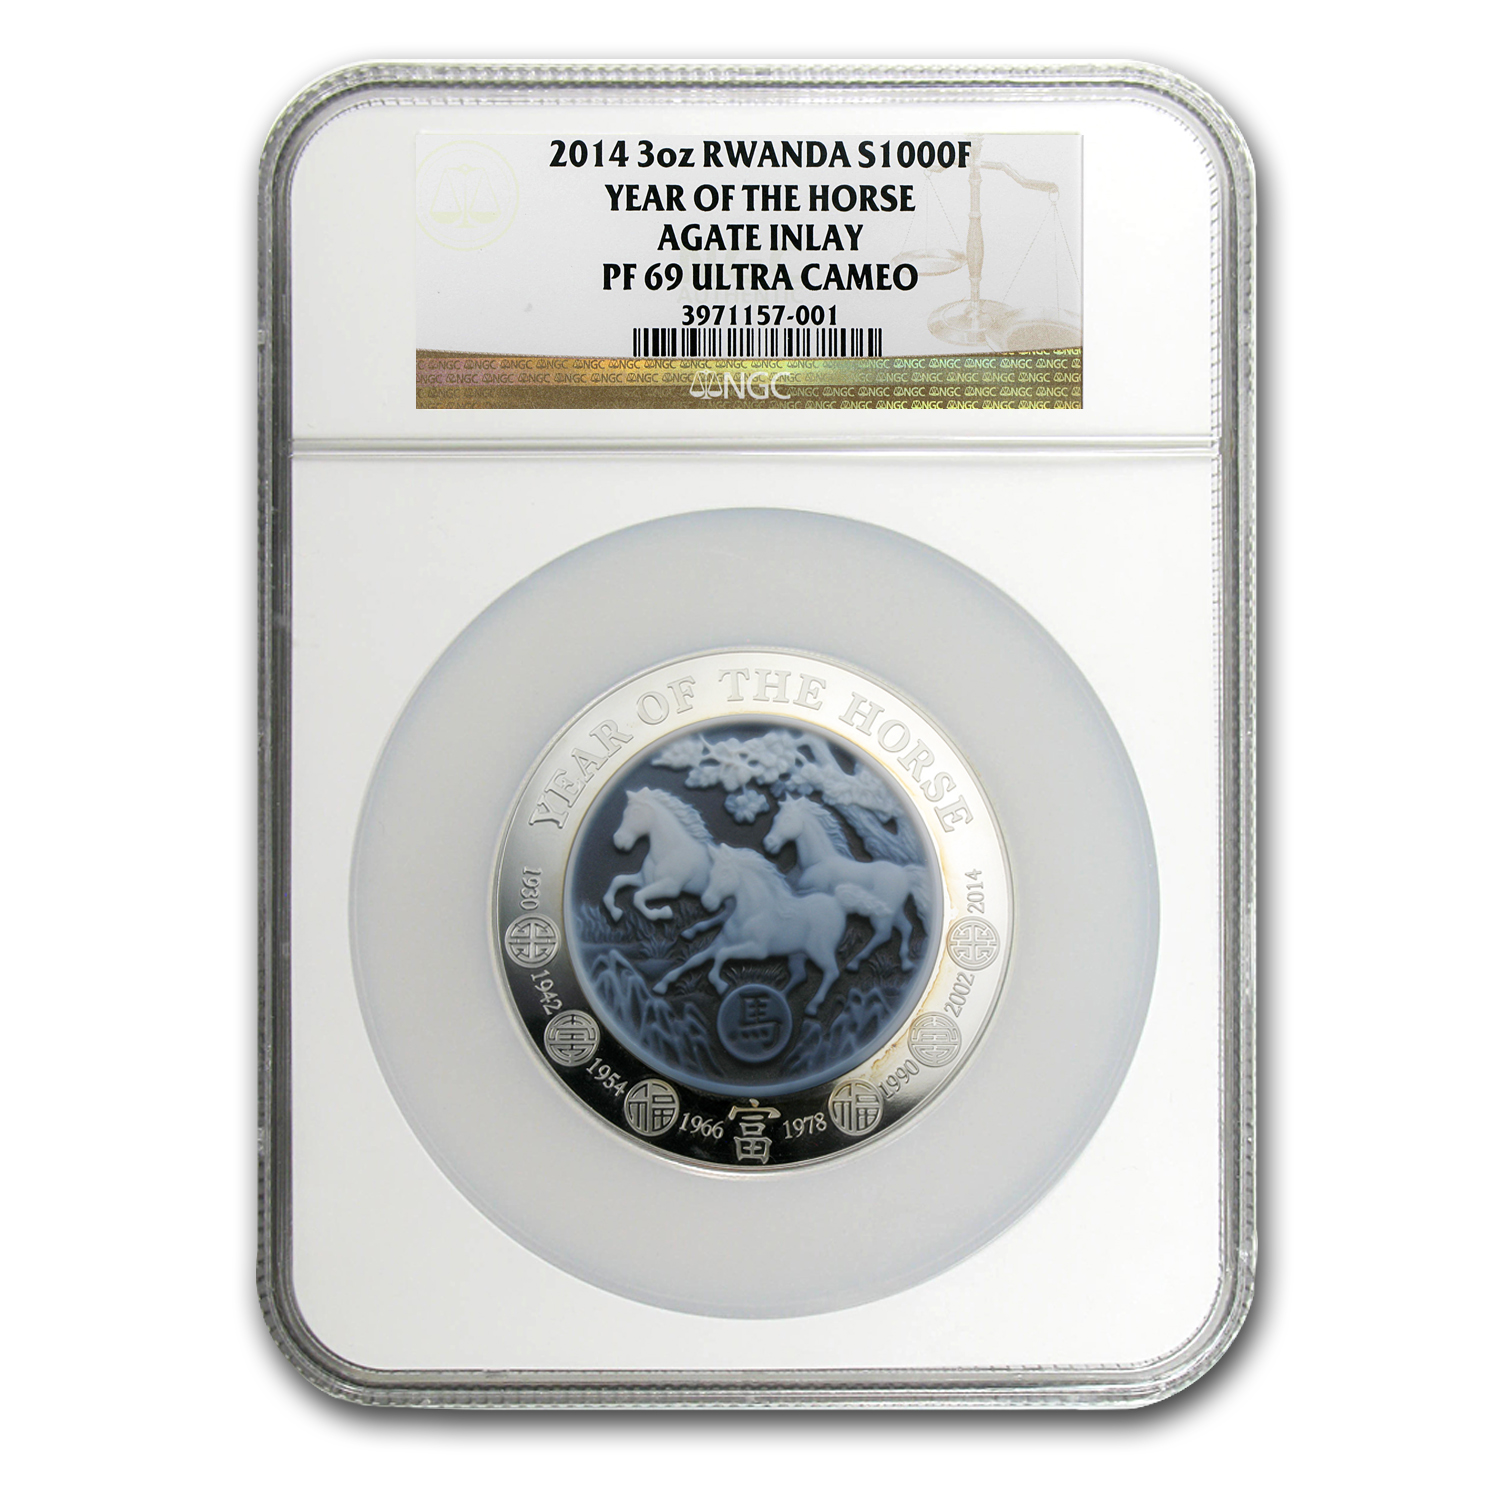 2014 Rwanda 3 oz Silver Year of the Horse Agate PF-69 NGC